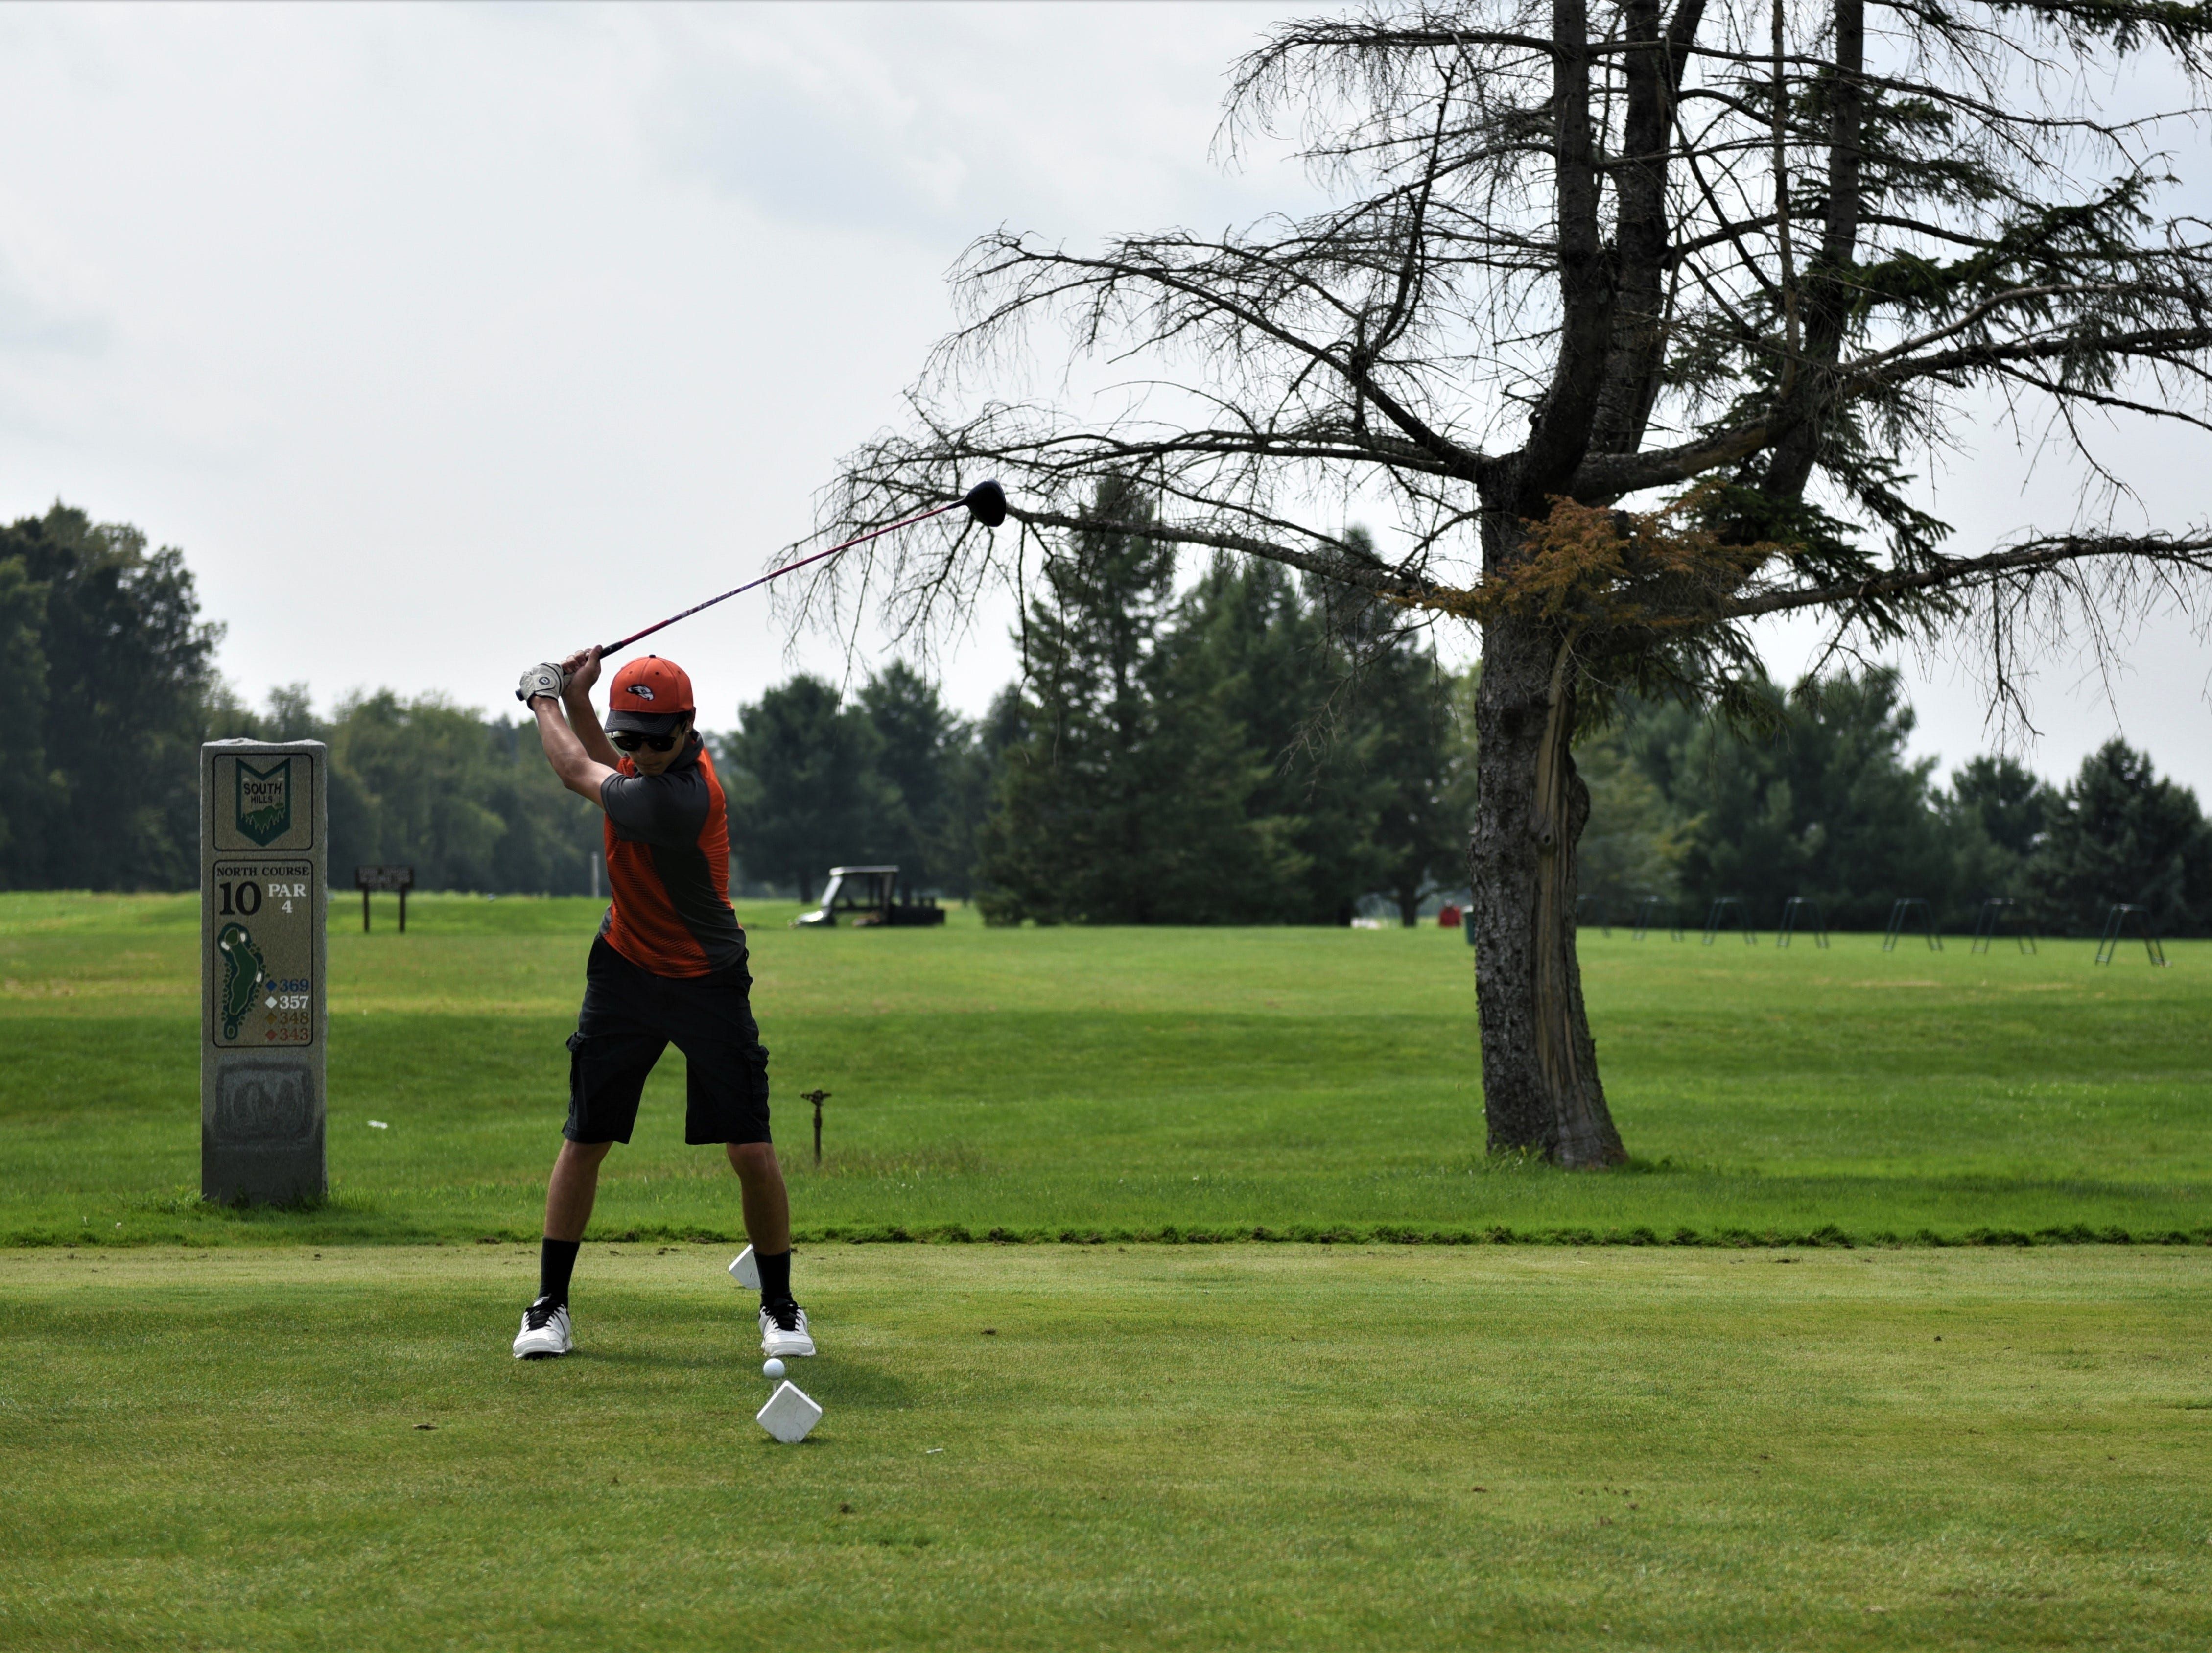 Cooper Roberts of Hanover High School competes during the Division III golf match at the South Hills Golf Course on Aug. 27, 2018.